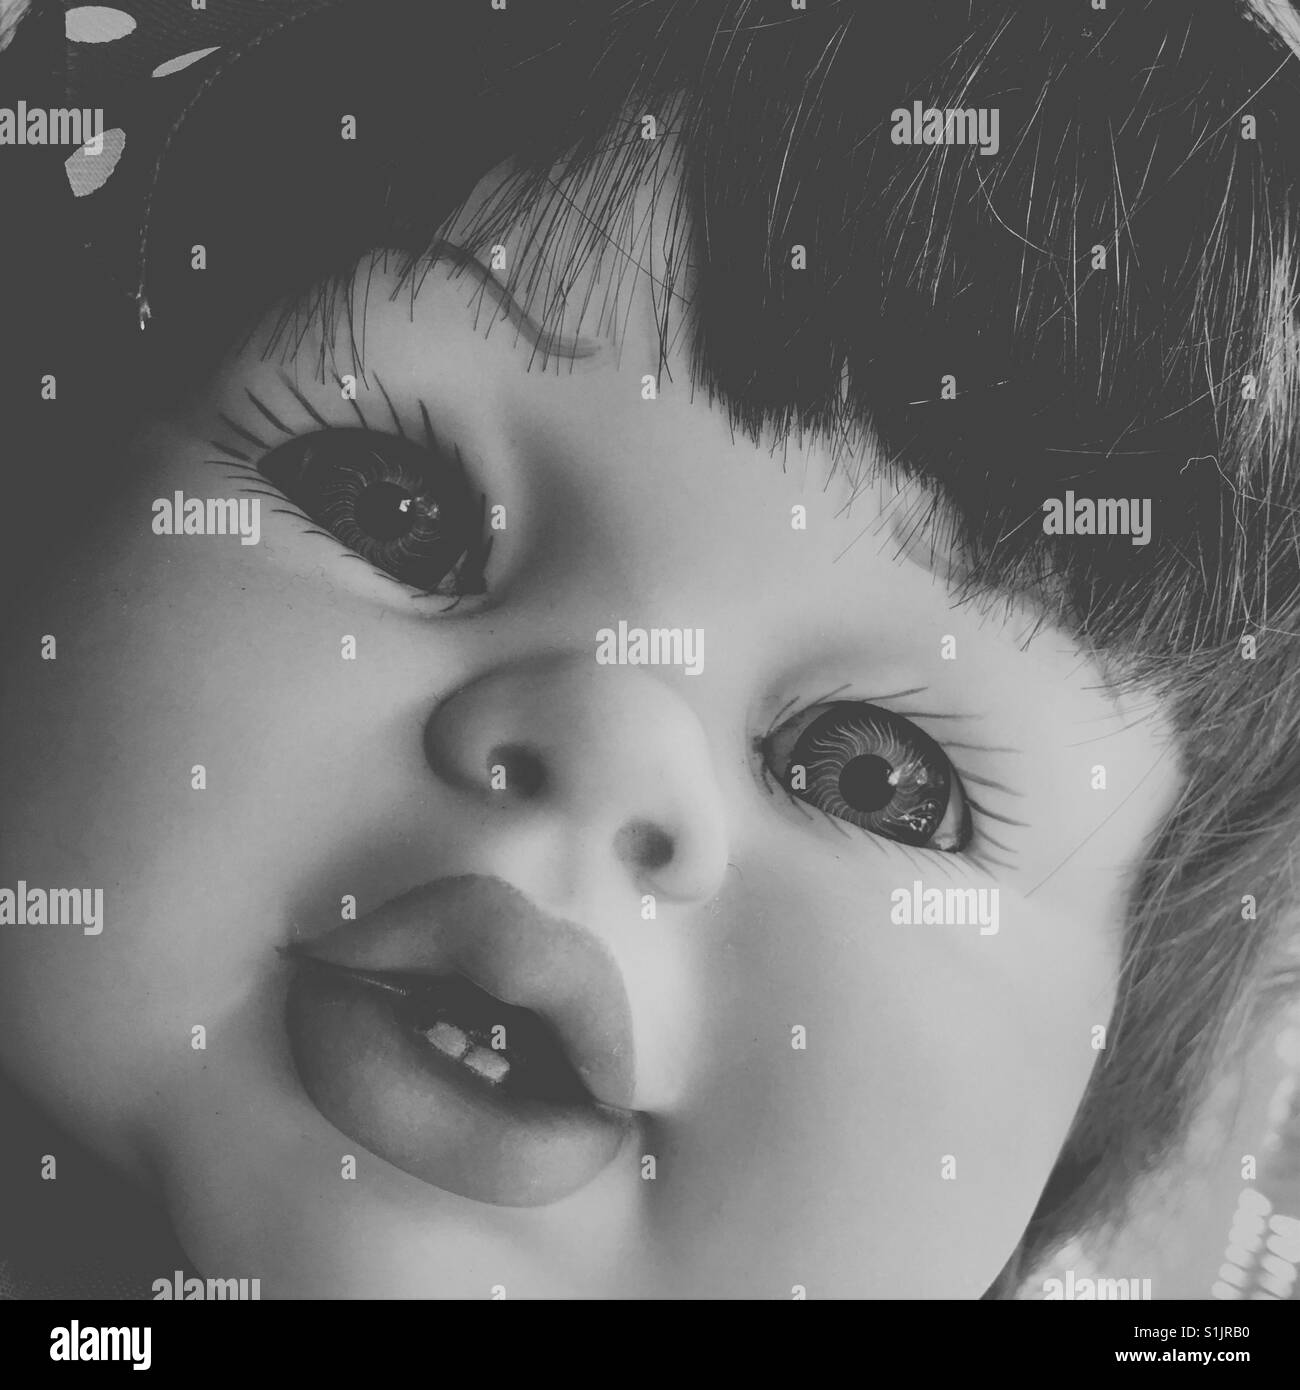 Doll face on black and white - Stock Image